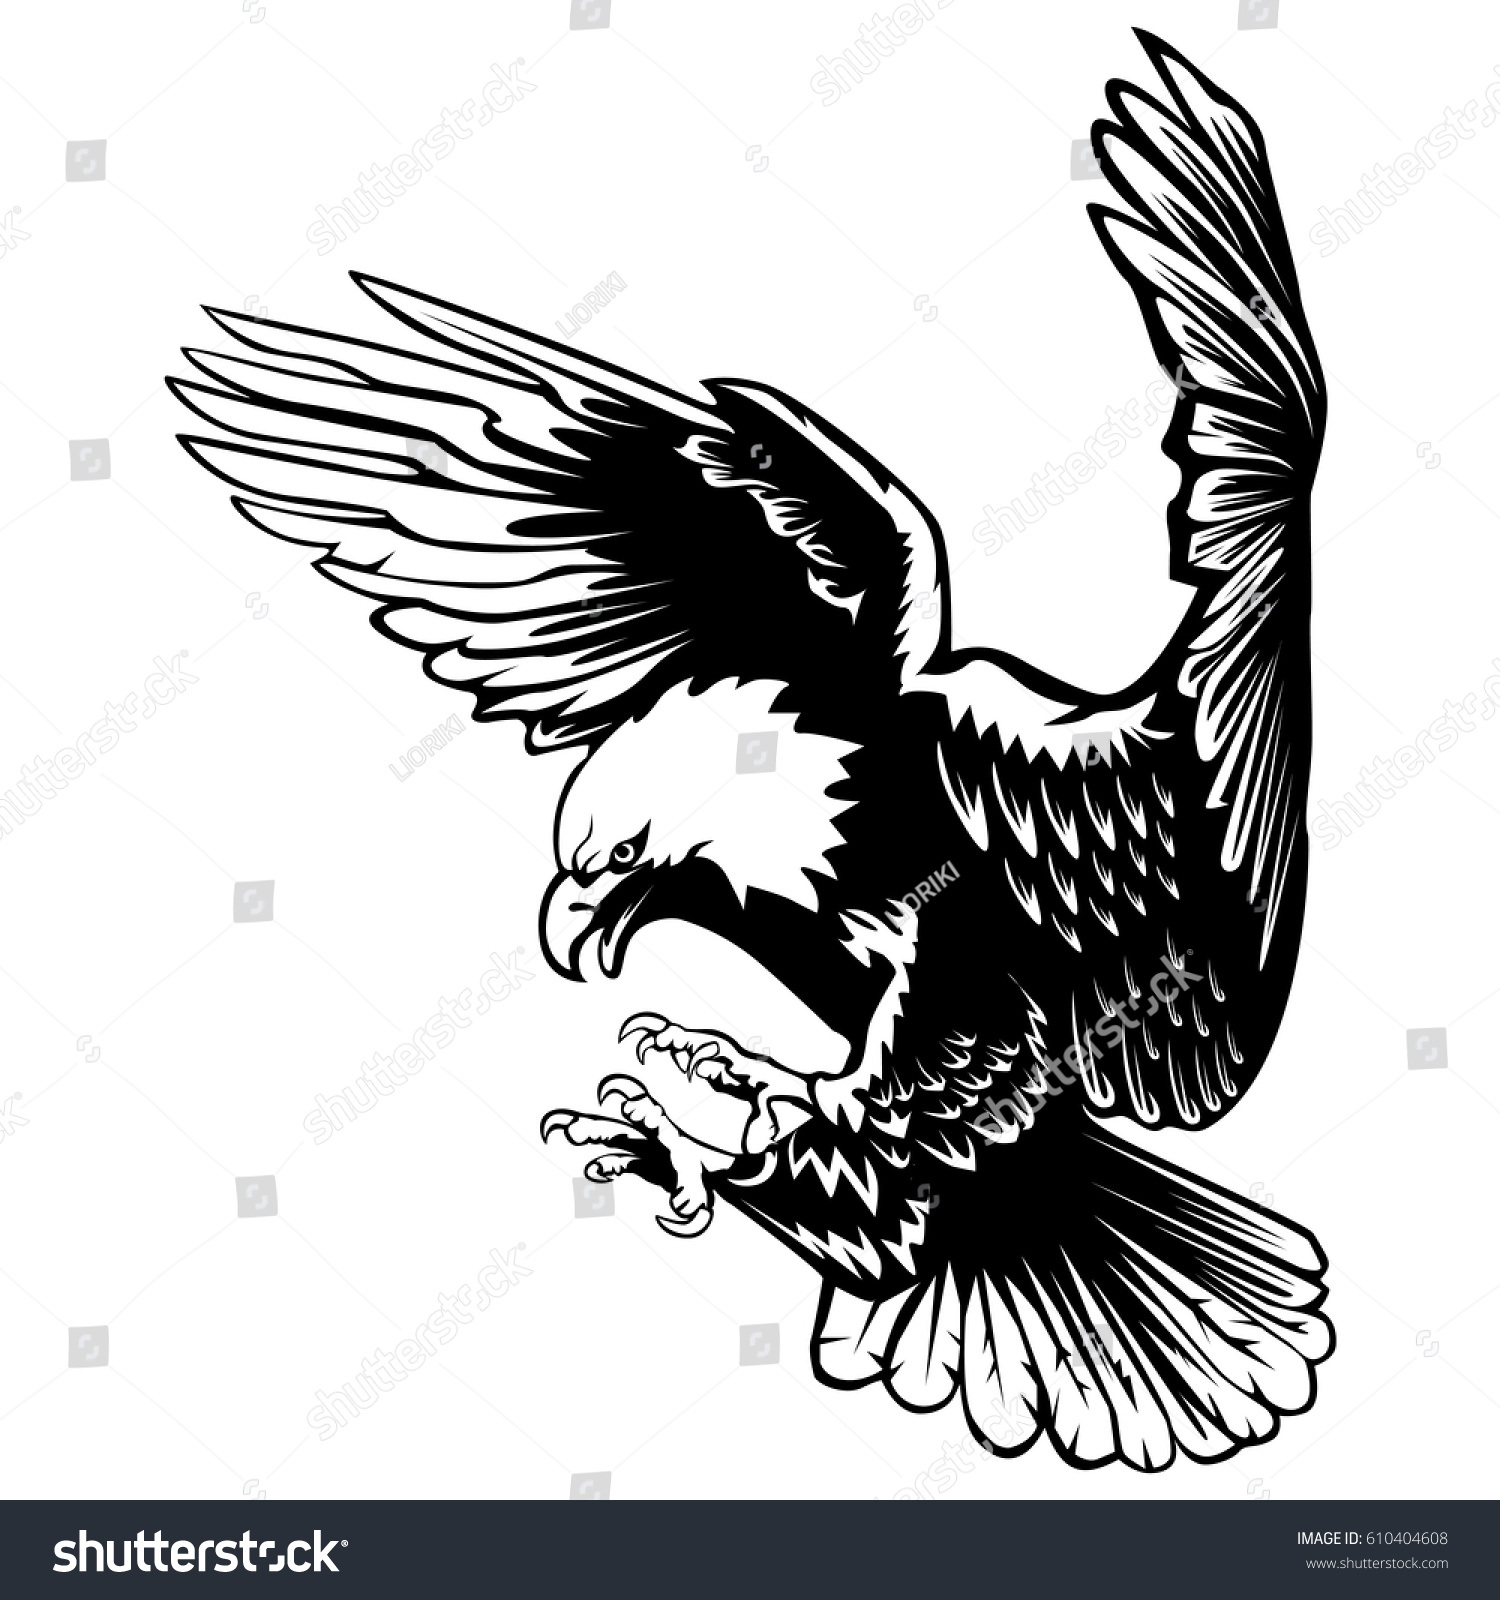 eagle symbol logo - photo #49